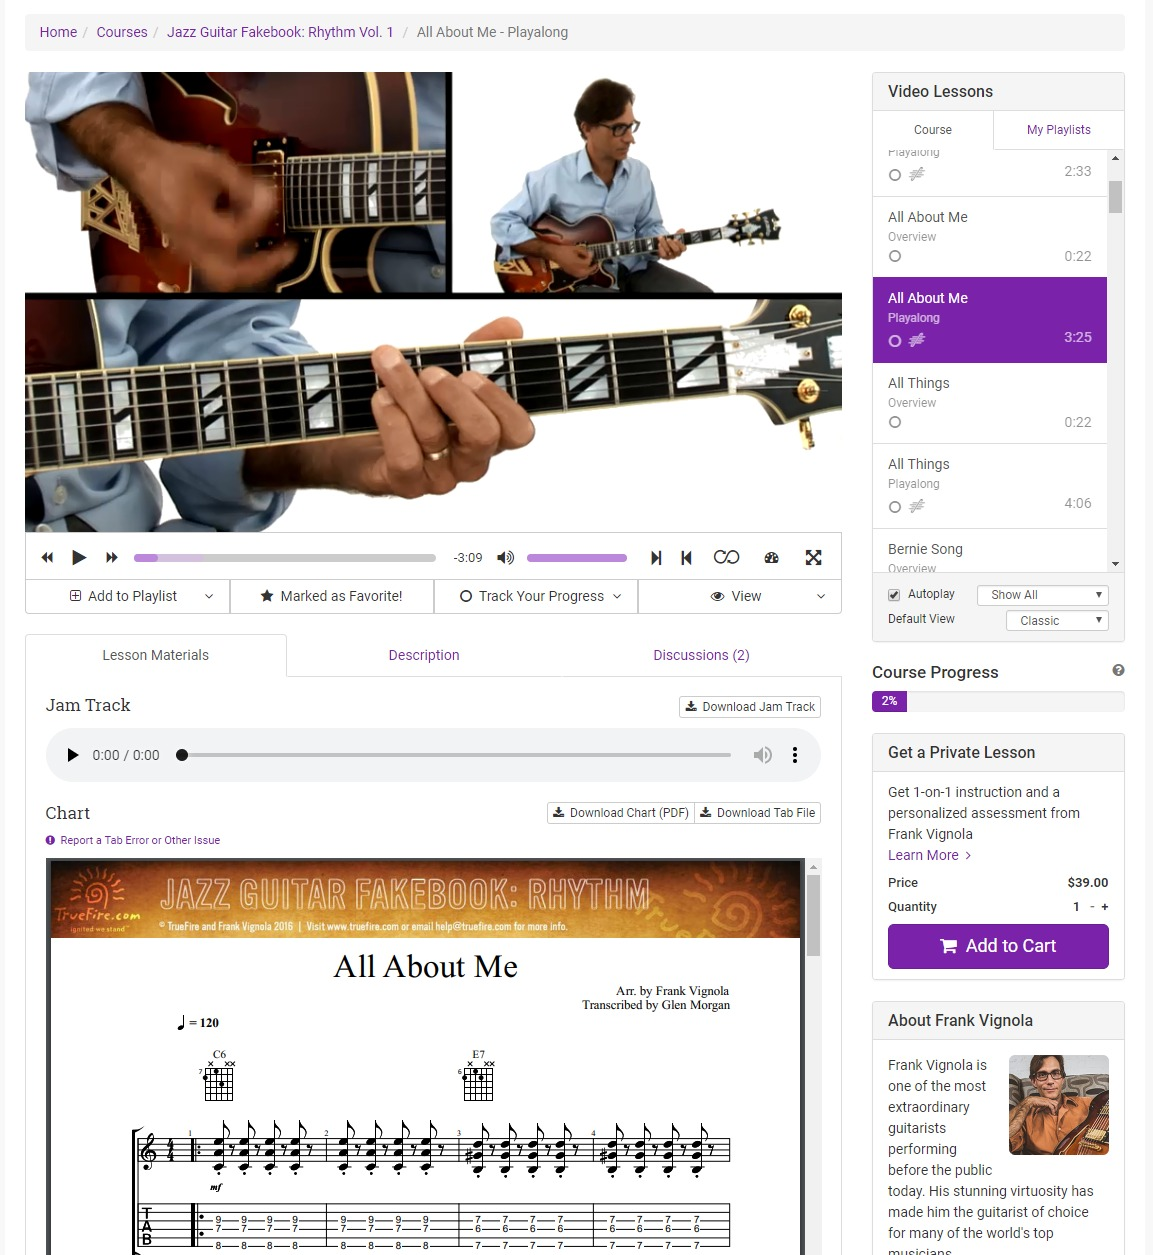 All_About_Me__Playalong___Frank_Vignola___Guitar_Lesson_TrueFire.jpg